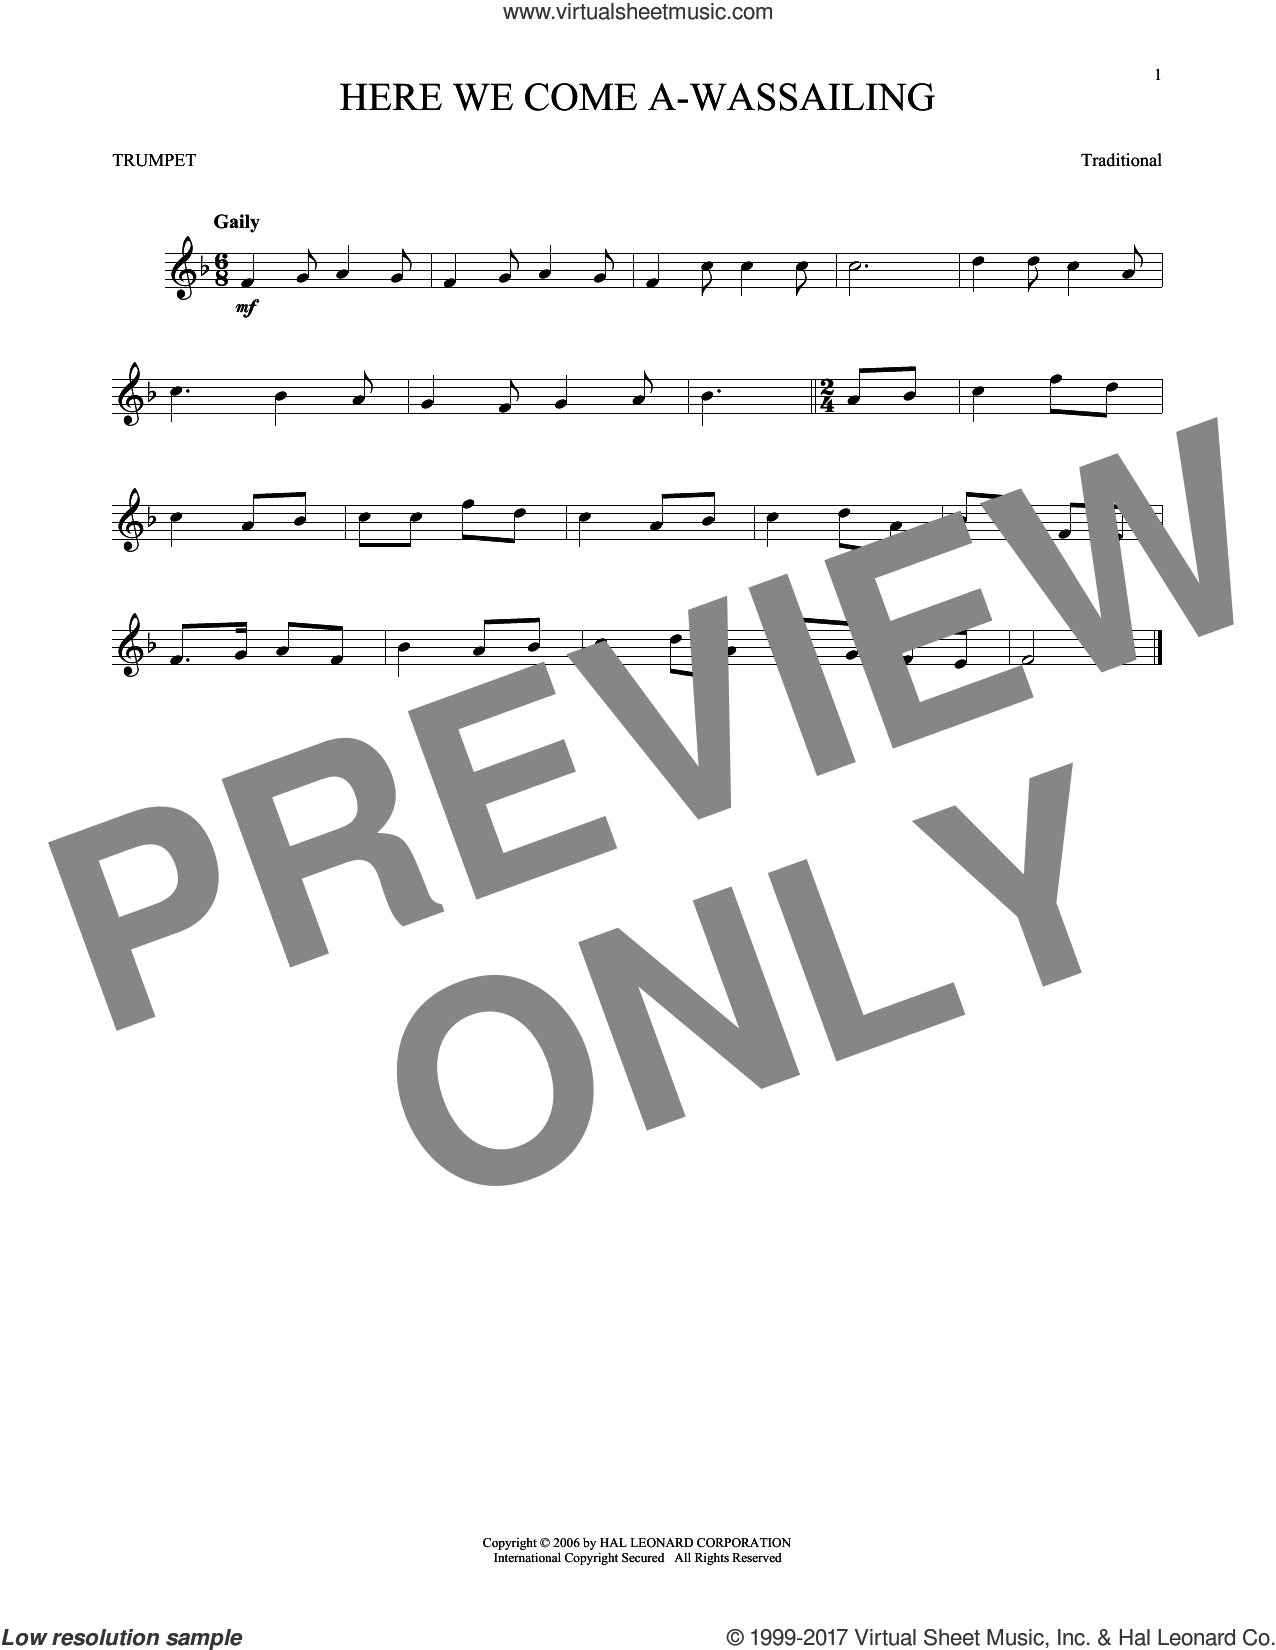 Here We Come A-Wassailing sheet music for trumpet solo. Score Image Preview.